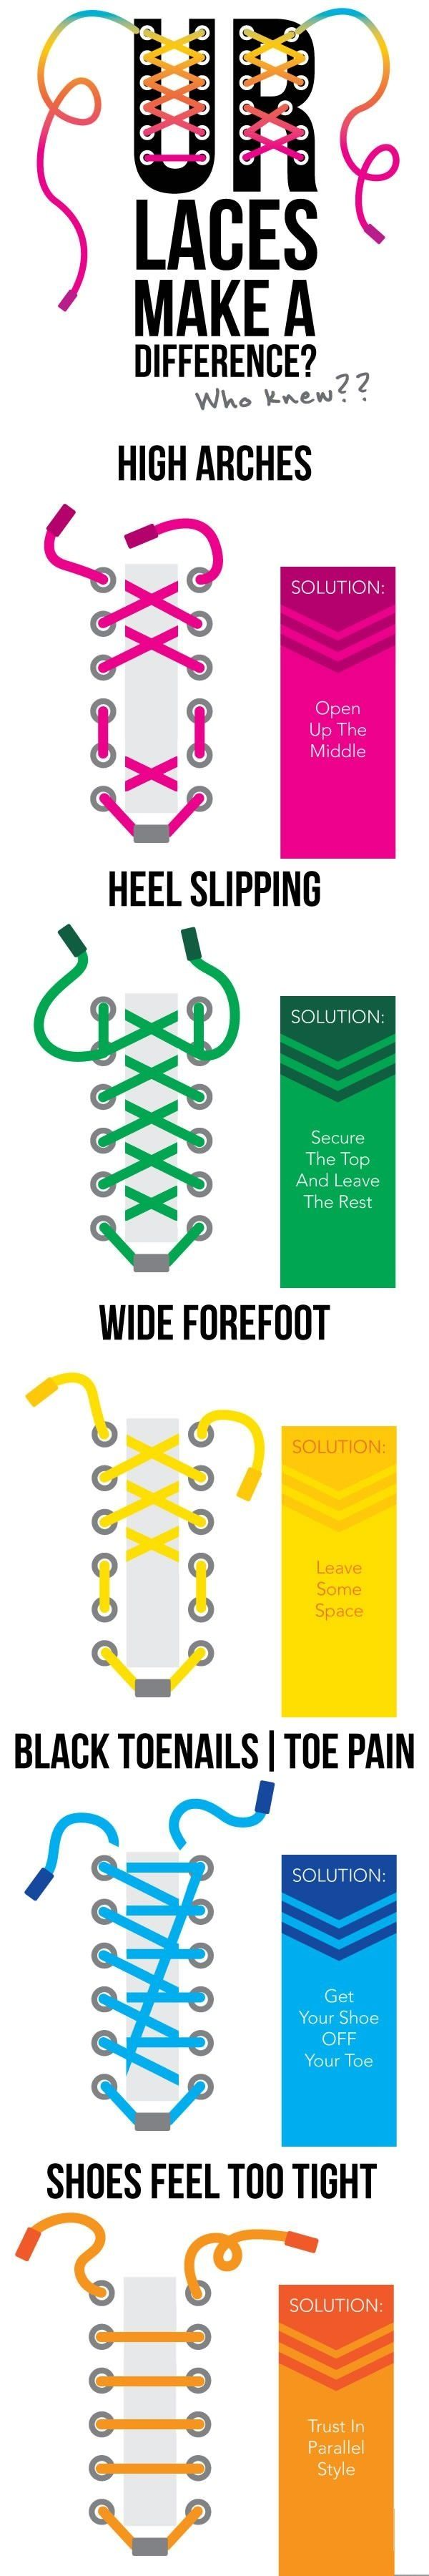 How To Lace Your Shoes To Improve Foot Comfort